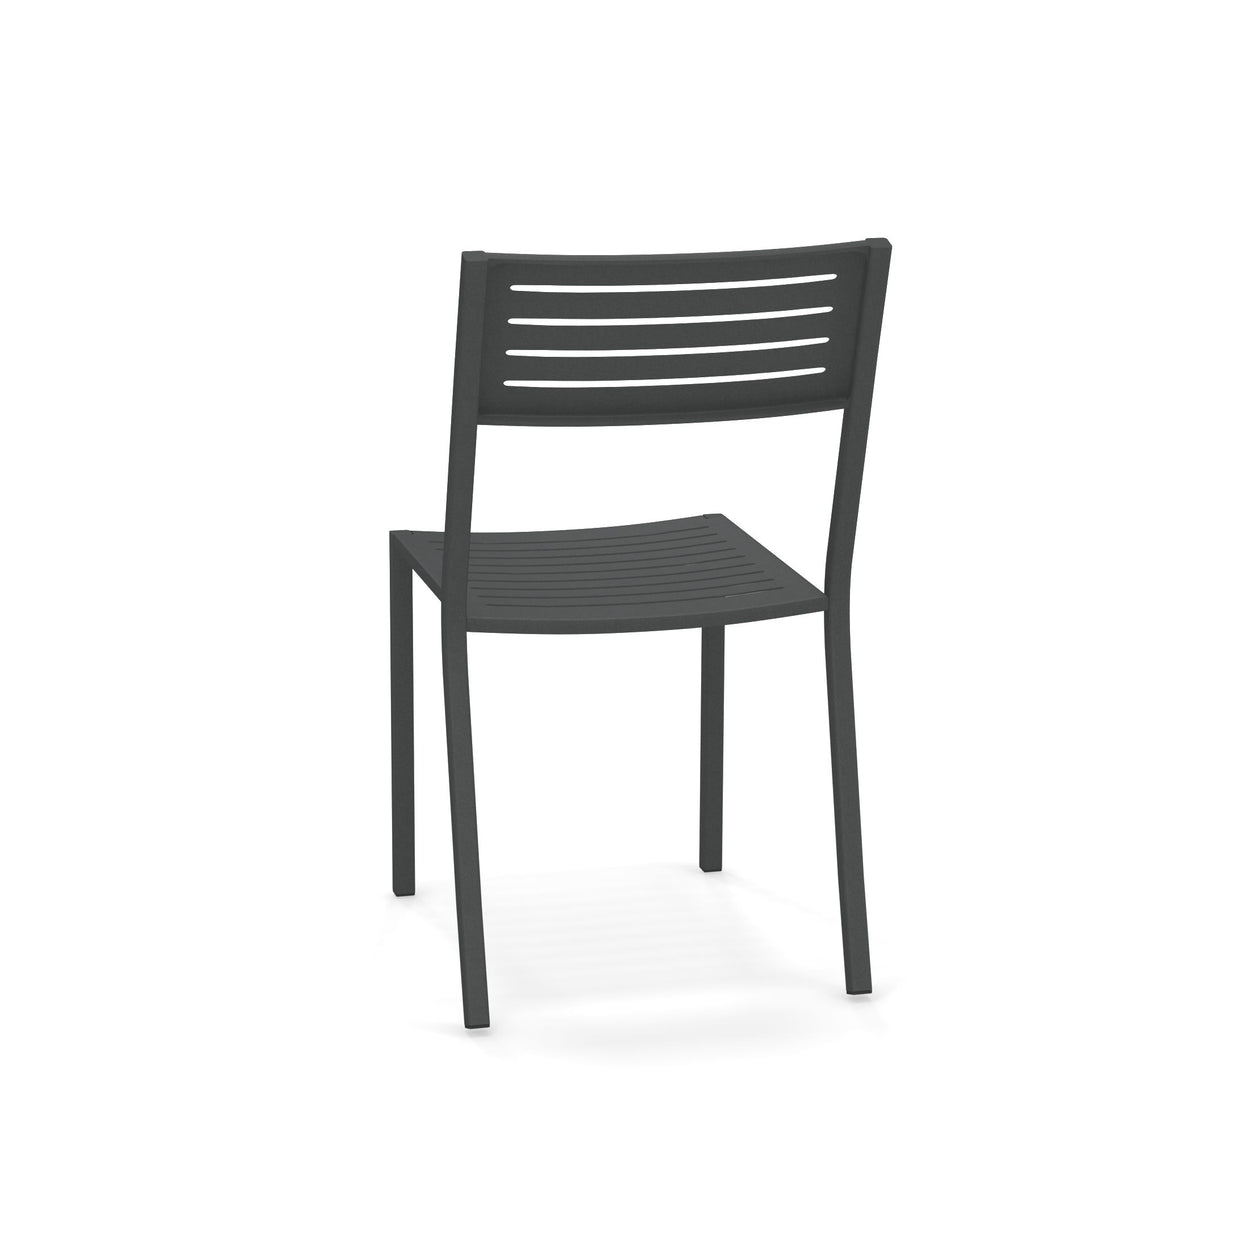 EMU Segno Chair (Set of 4)